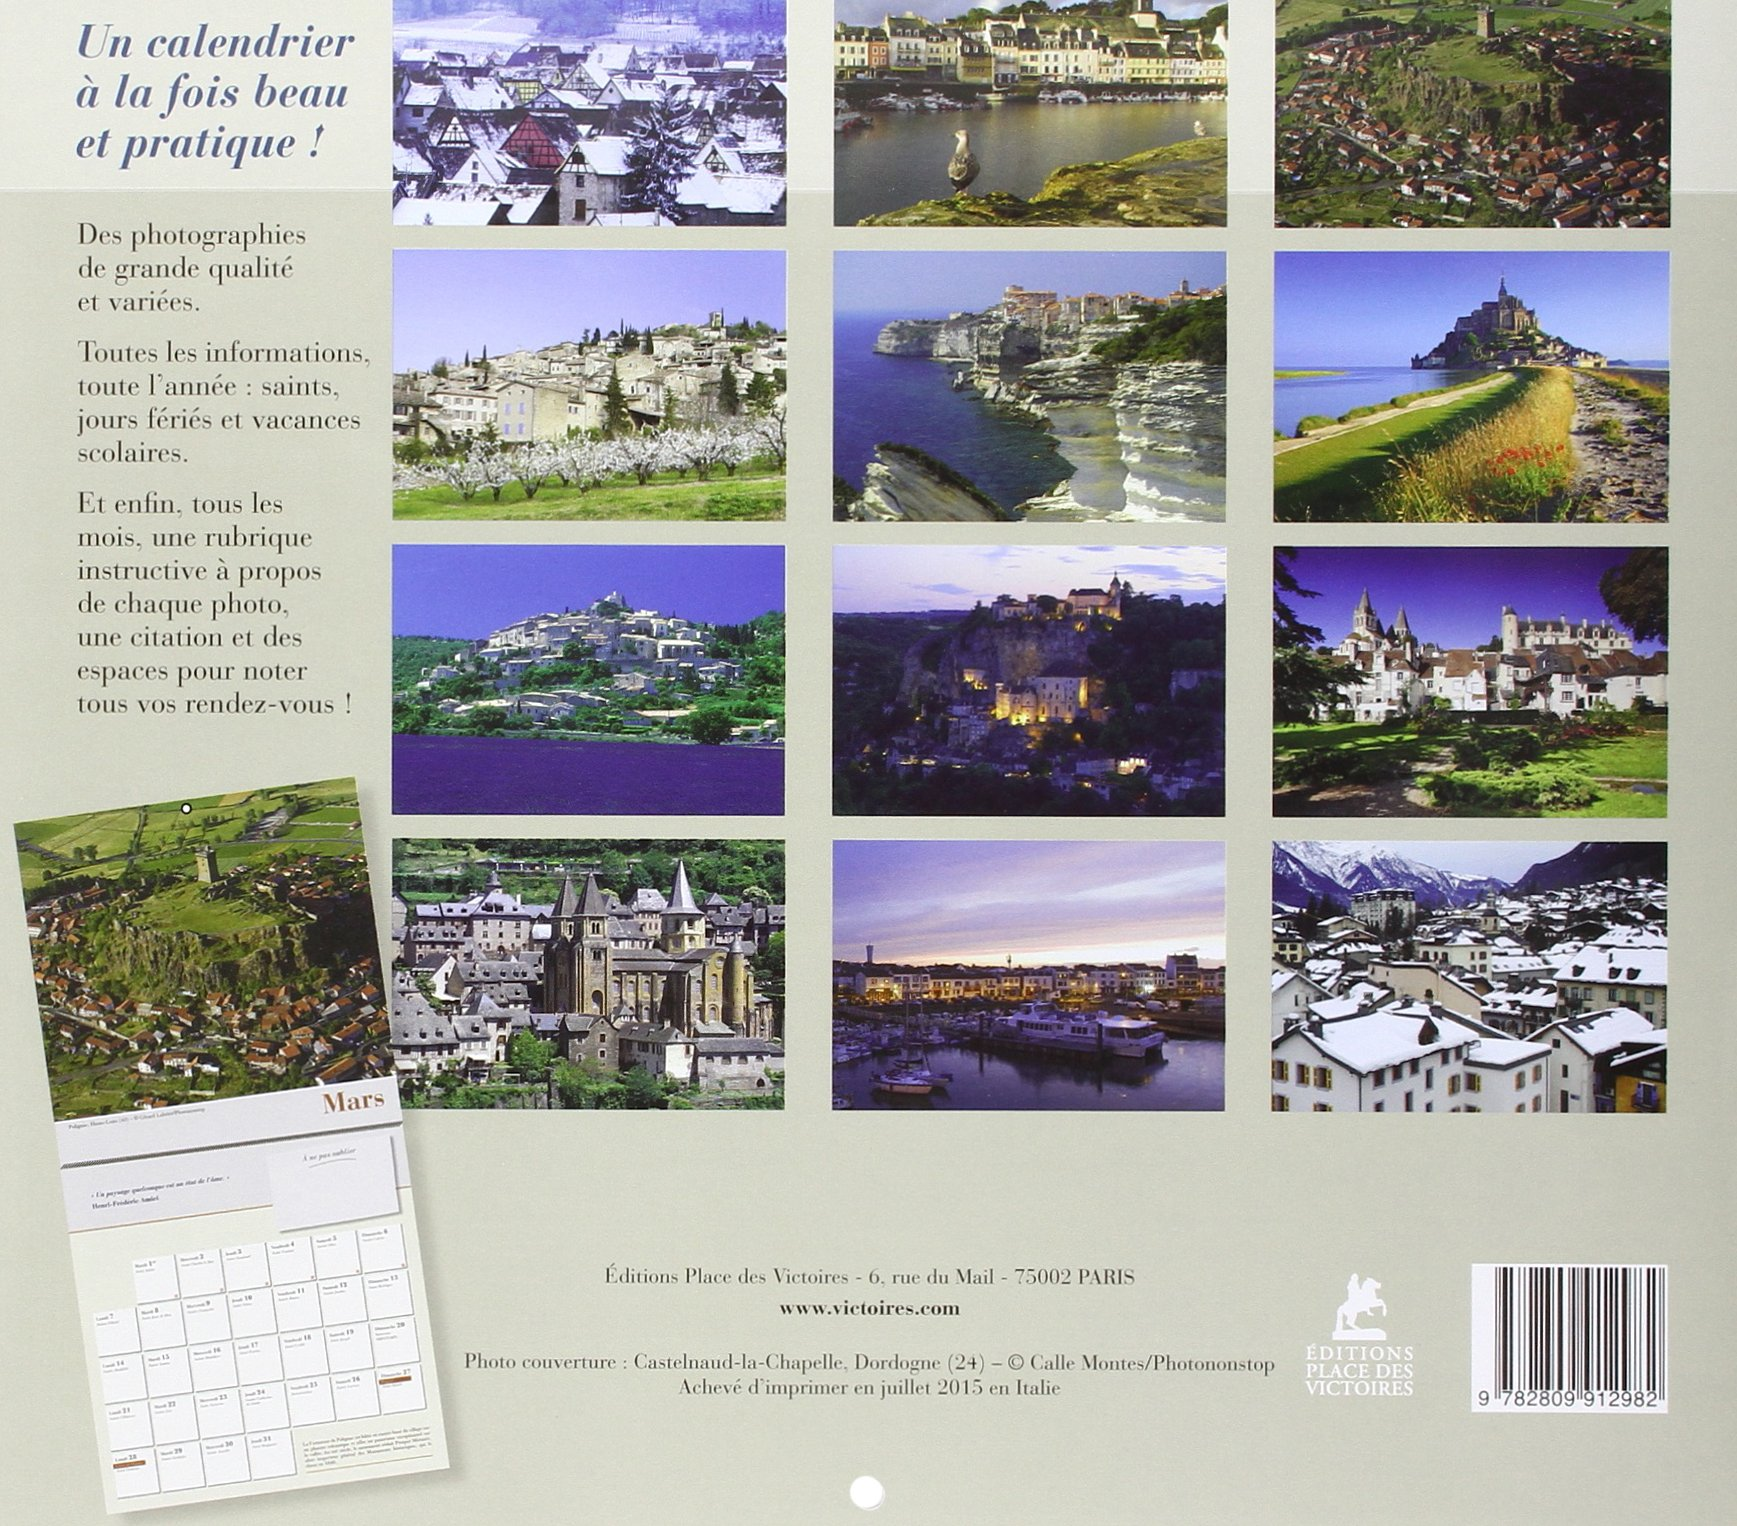 Attrayant Editions Place Des Victoires #4: Villages De France Calendrier 2016 [ Calendar ] (French Edition):  Collectif, Place Des Victoires: 9782809912982: Amazon.com: Books